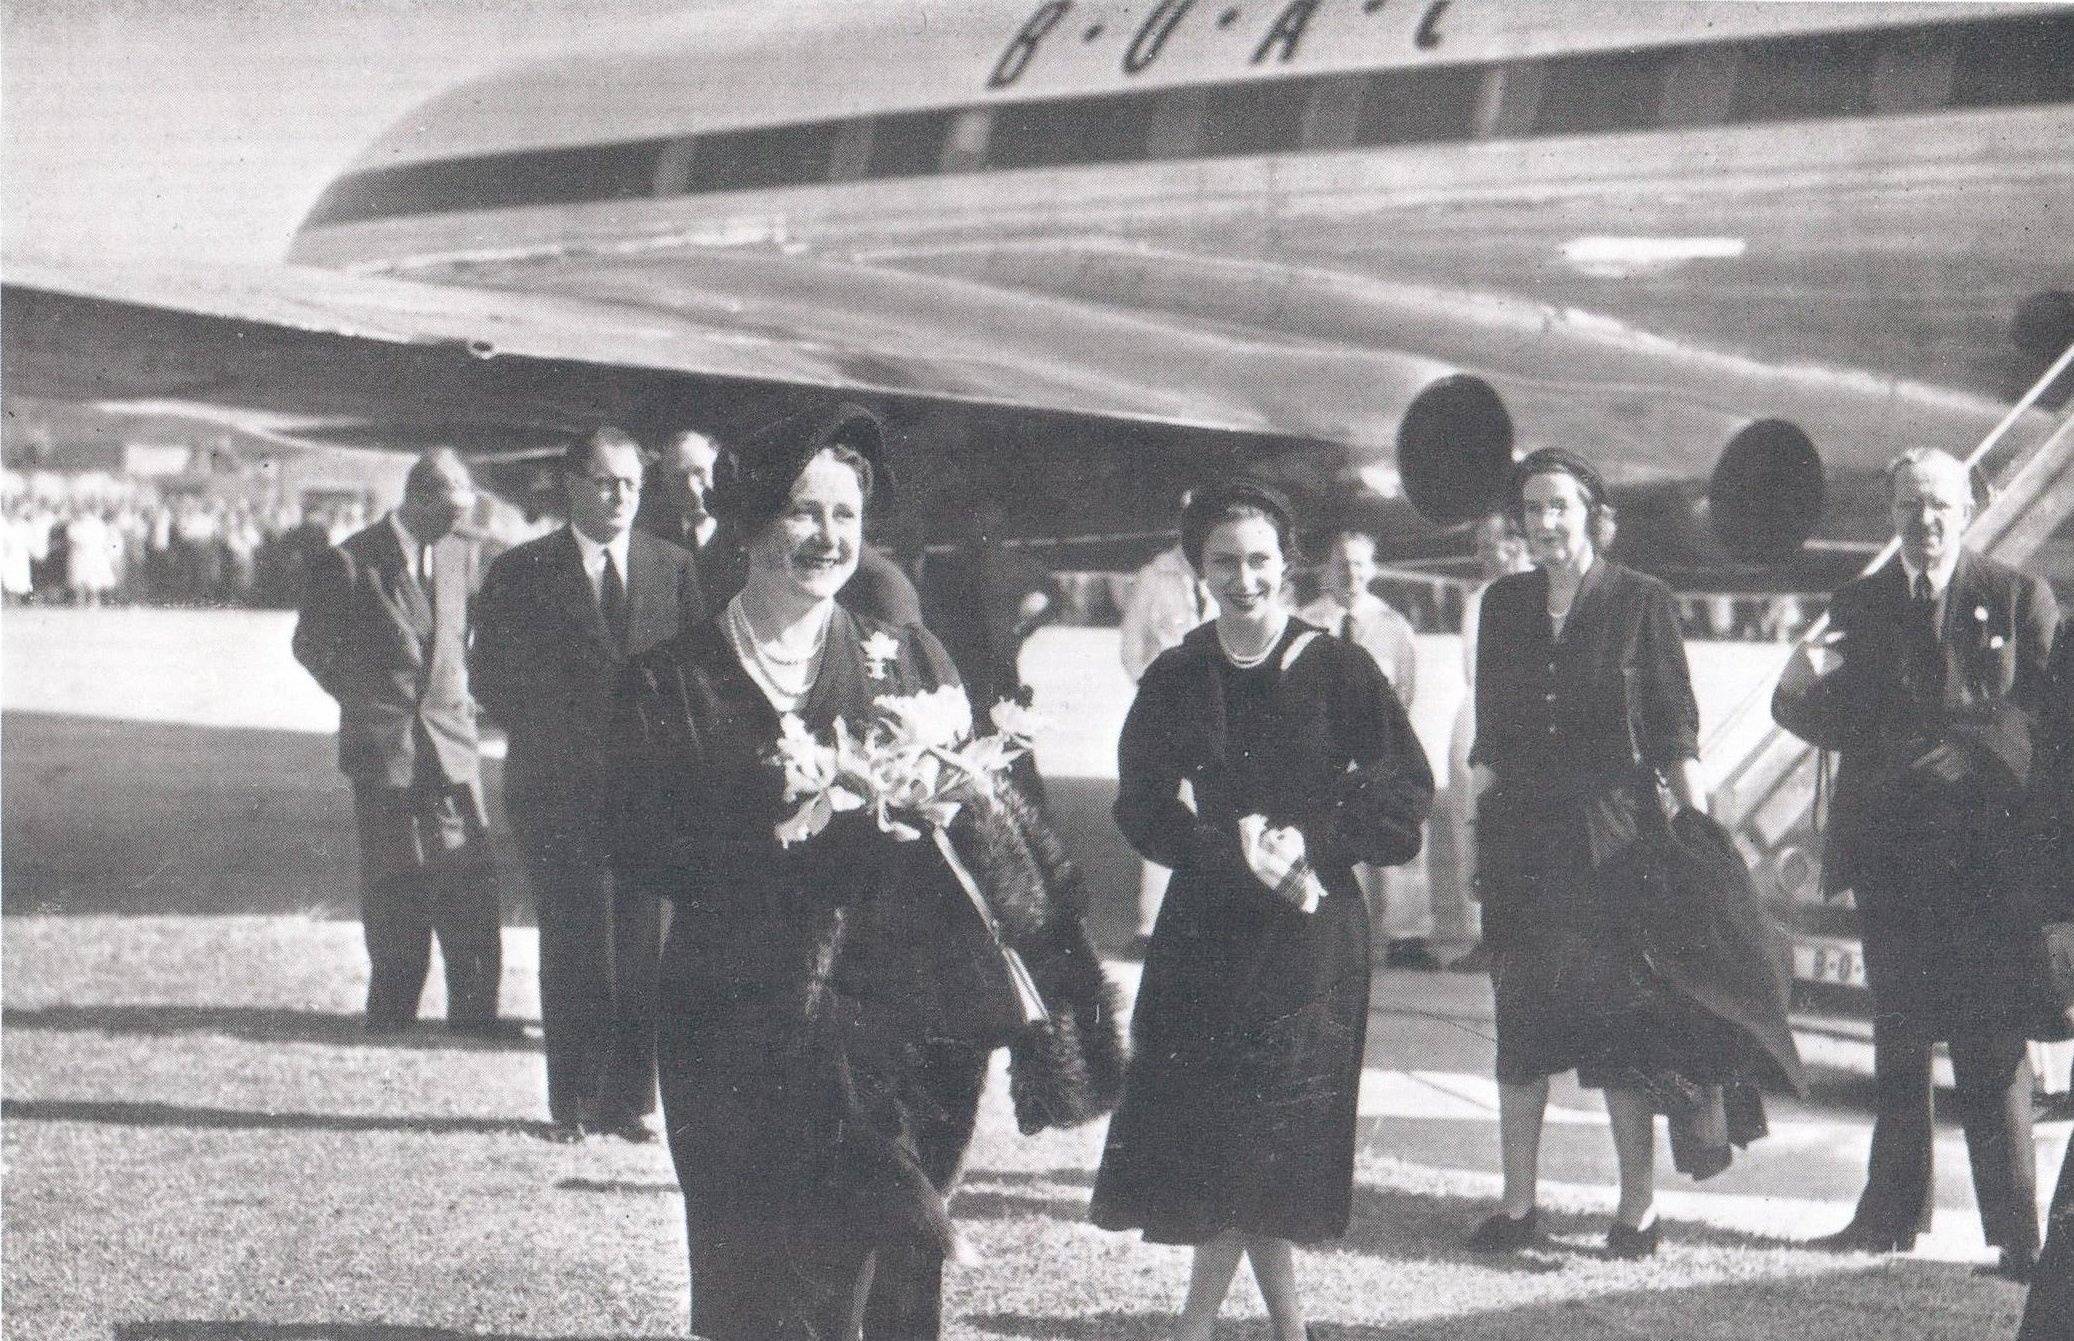 HM Queen Elizabeth, The Queen Mother and Princess Margaret about to board a Comet in June 1953